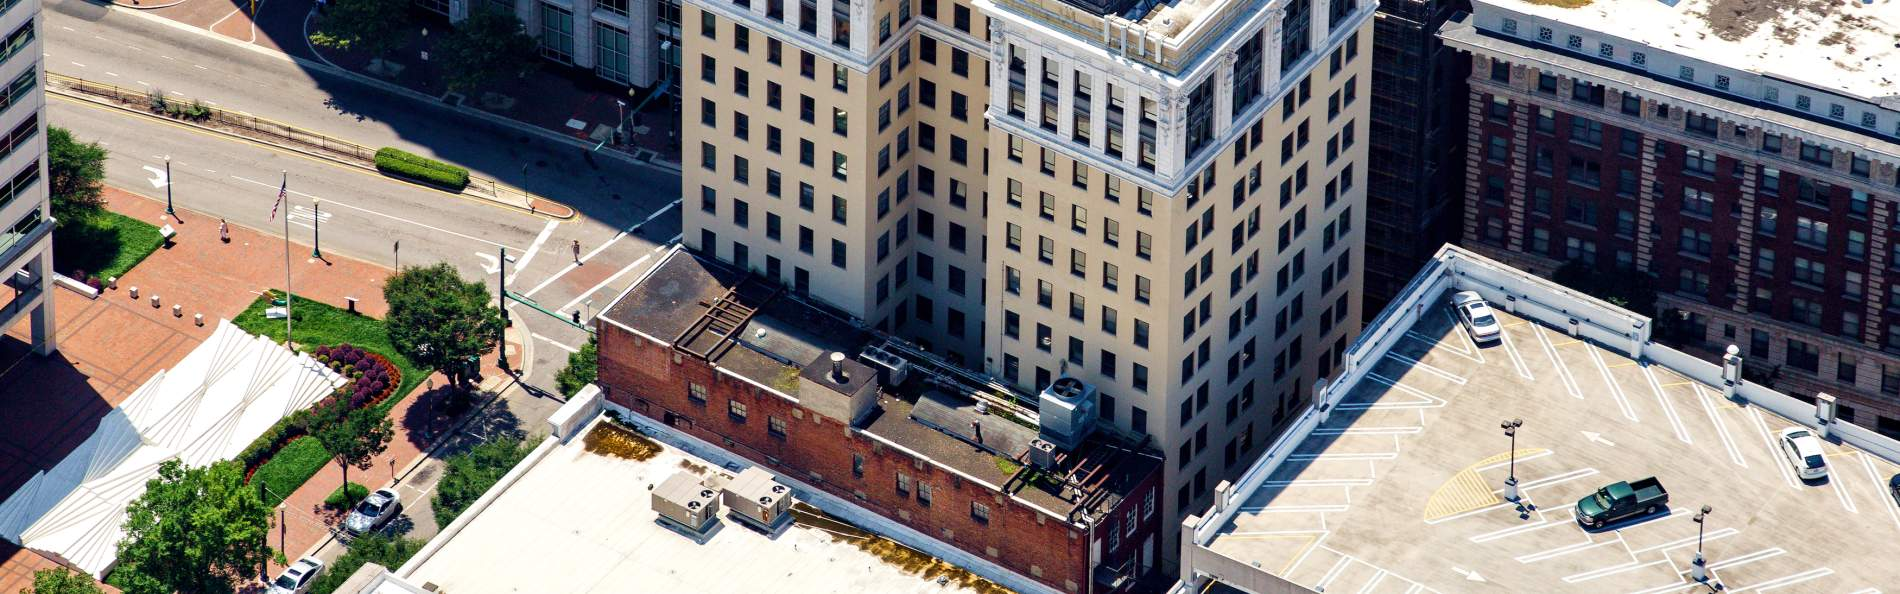 Aerial view of royster building renovated into hotel